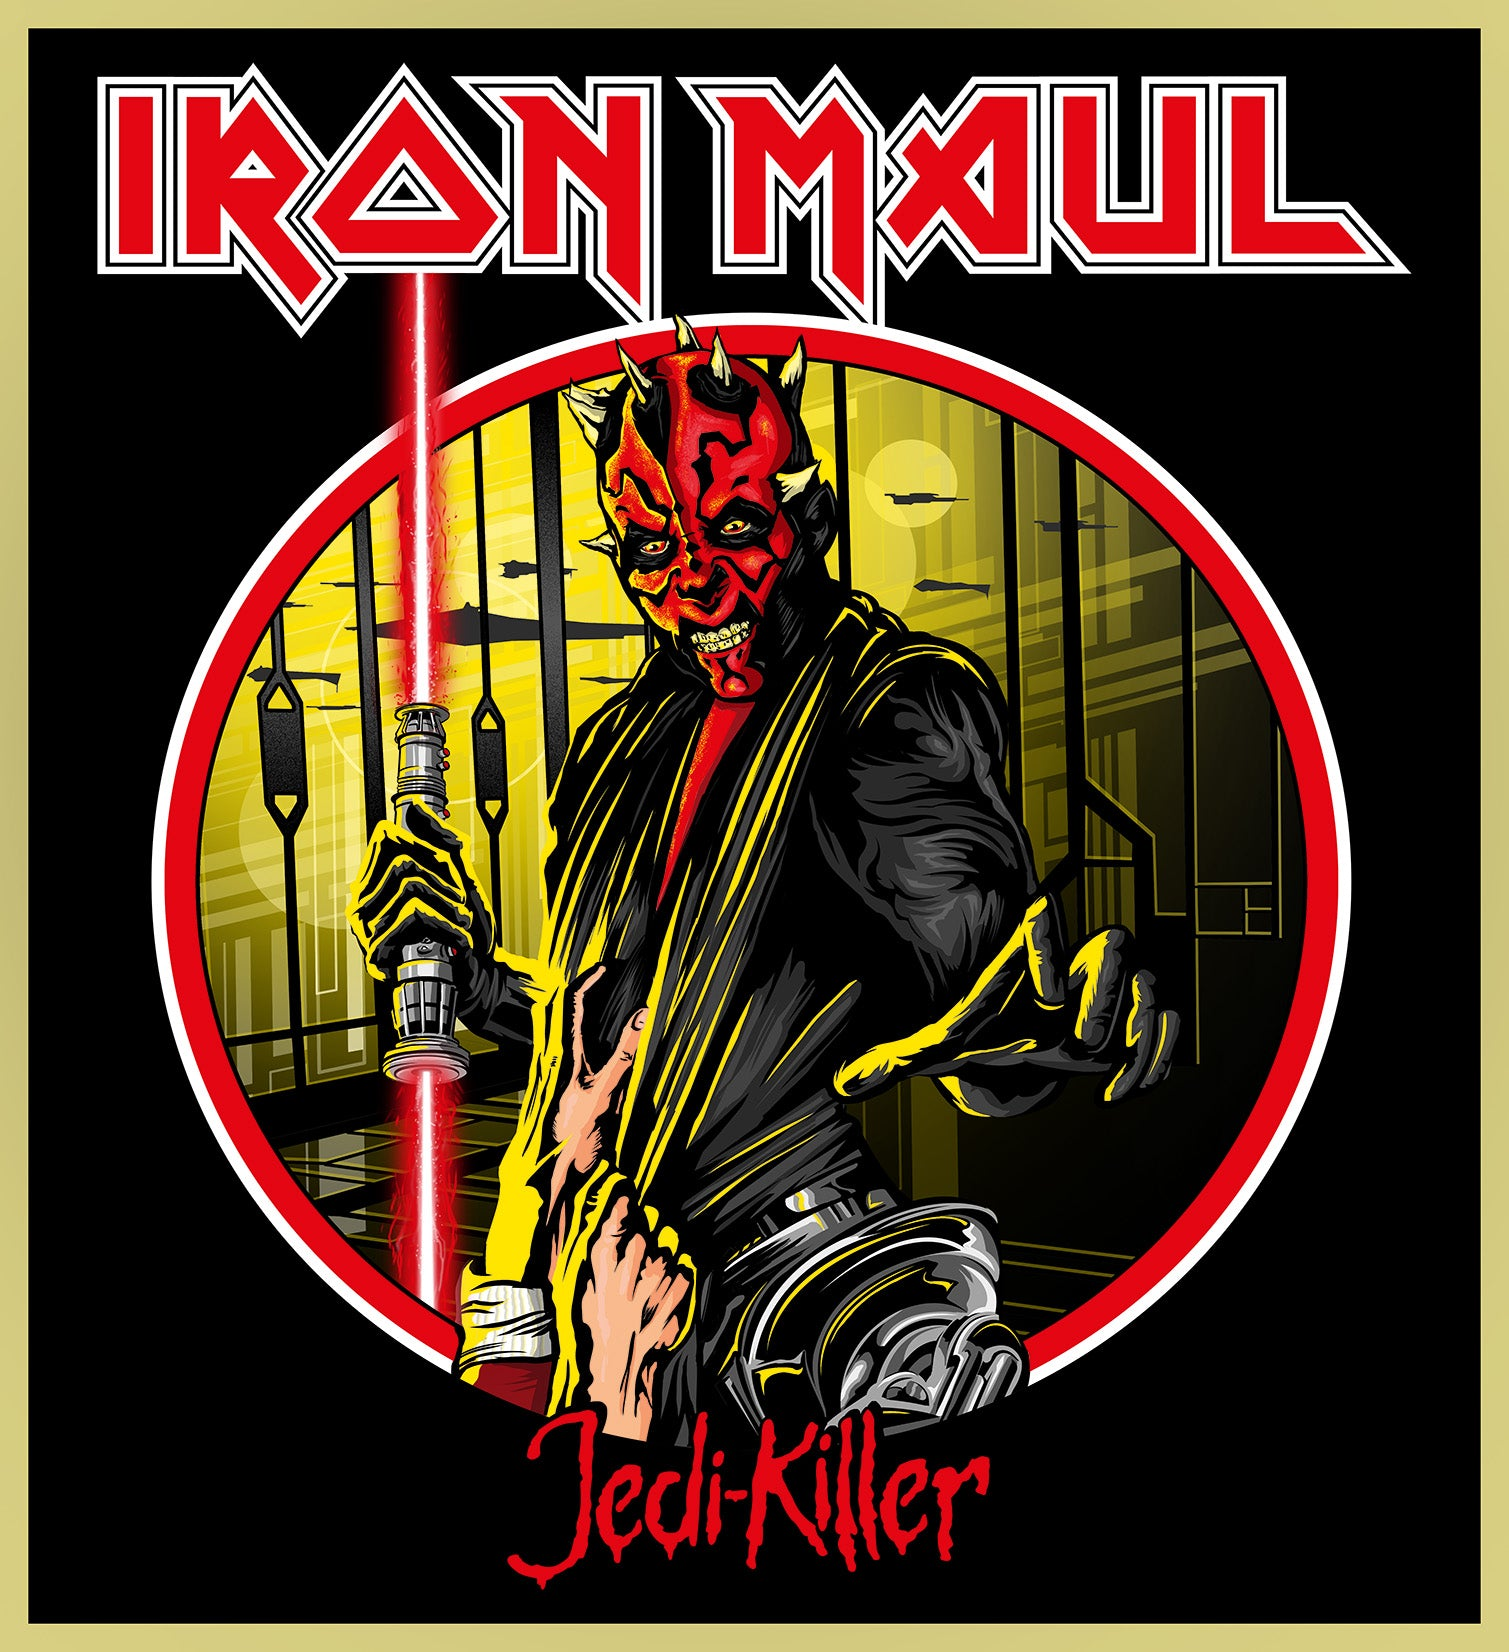 DARTH MAUL - IRON MAIDEN HEAVY METAL TURBO TEE!